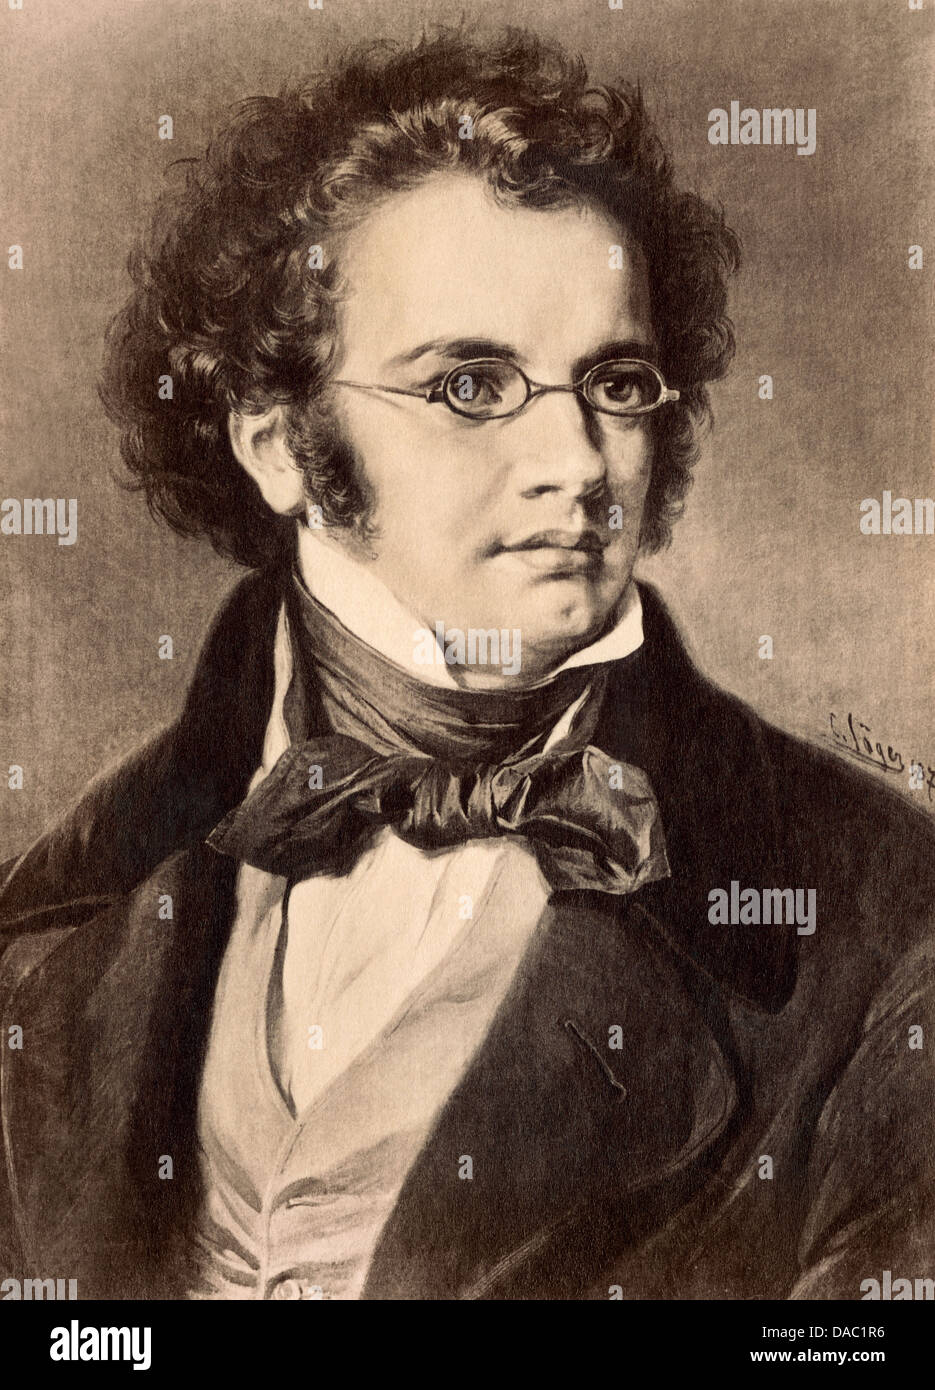 Portrait of composer Franz Schubert. Photograph of a painting - Stock Image